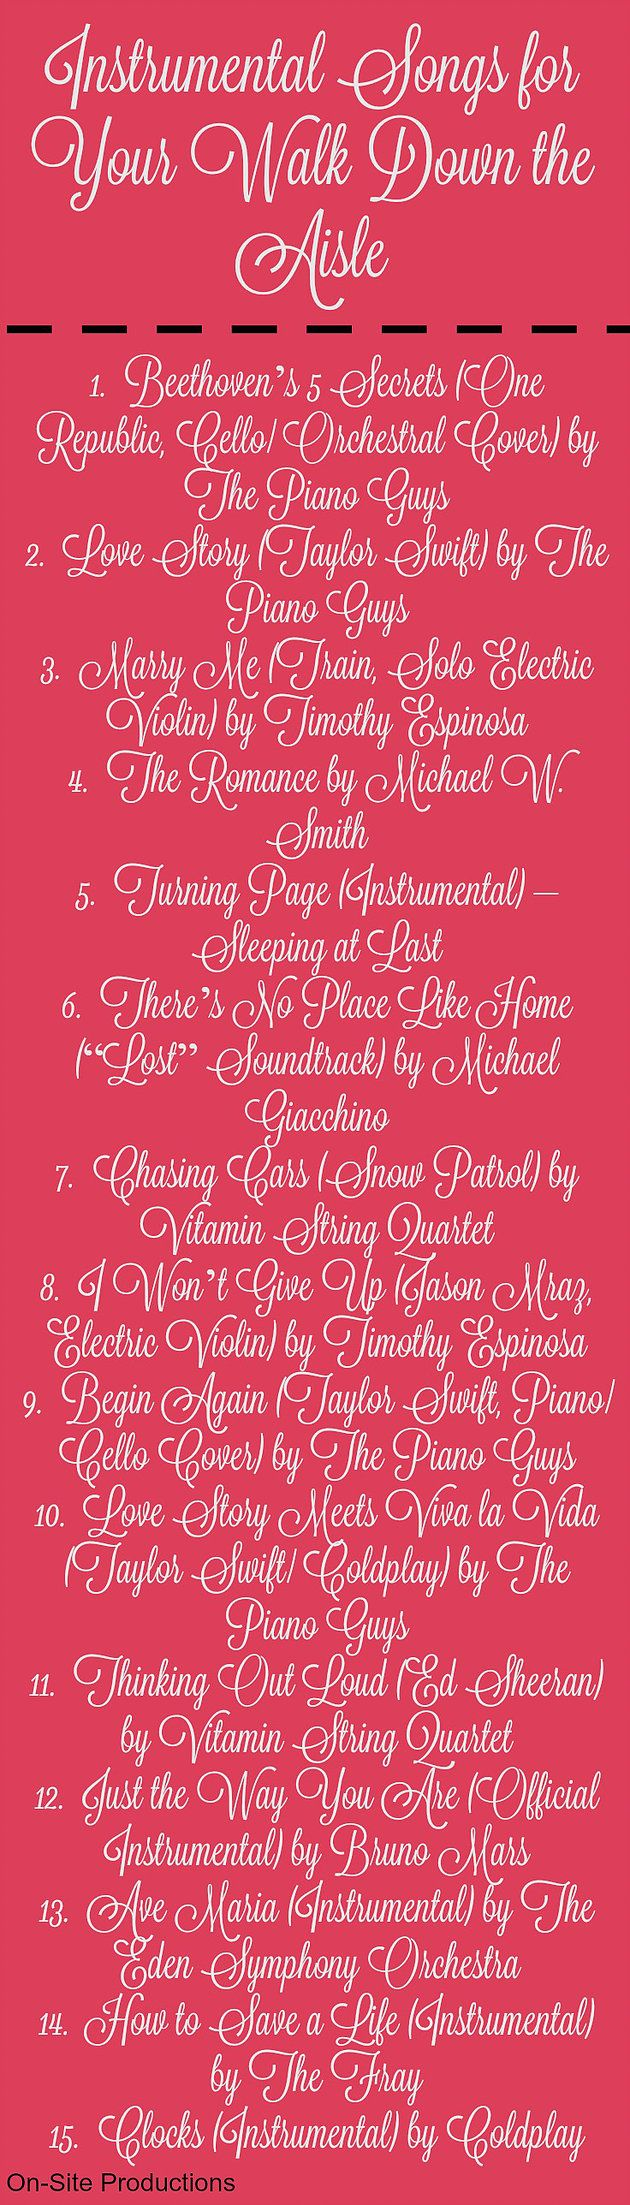 15 Instrumental Songs To Play For Your Walk Down The Aisle Oh My